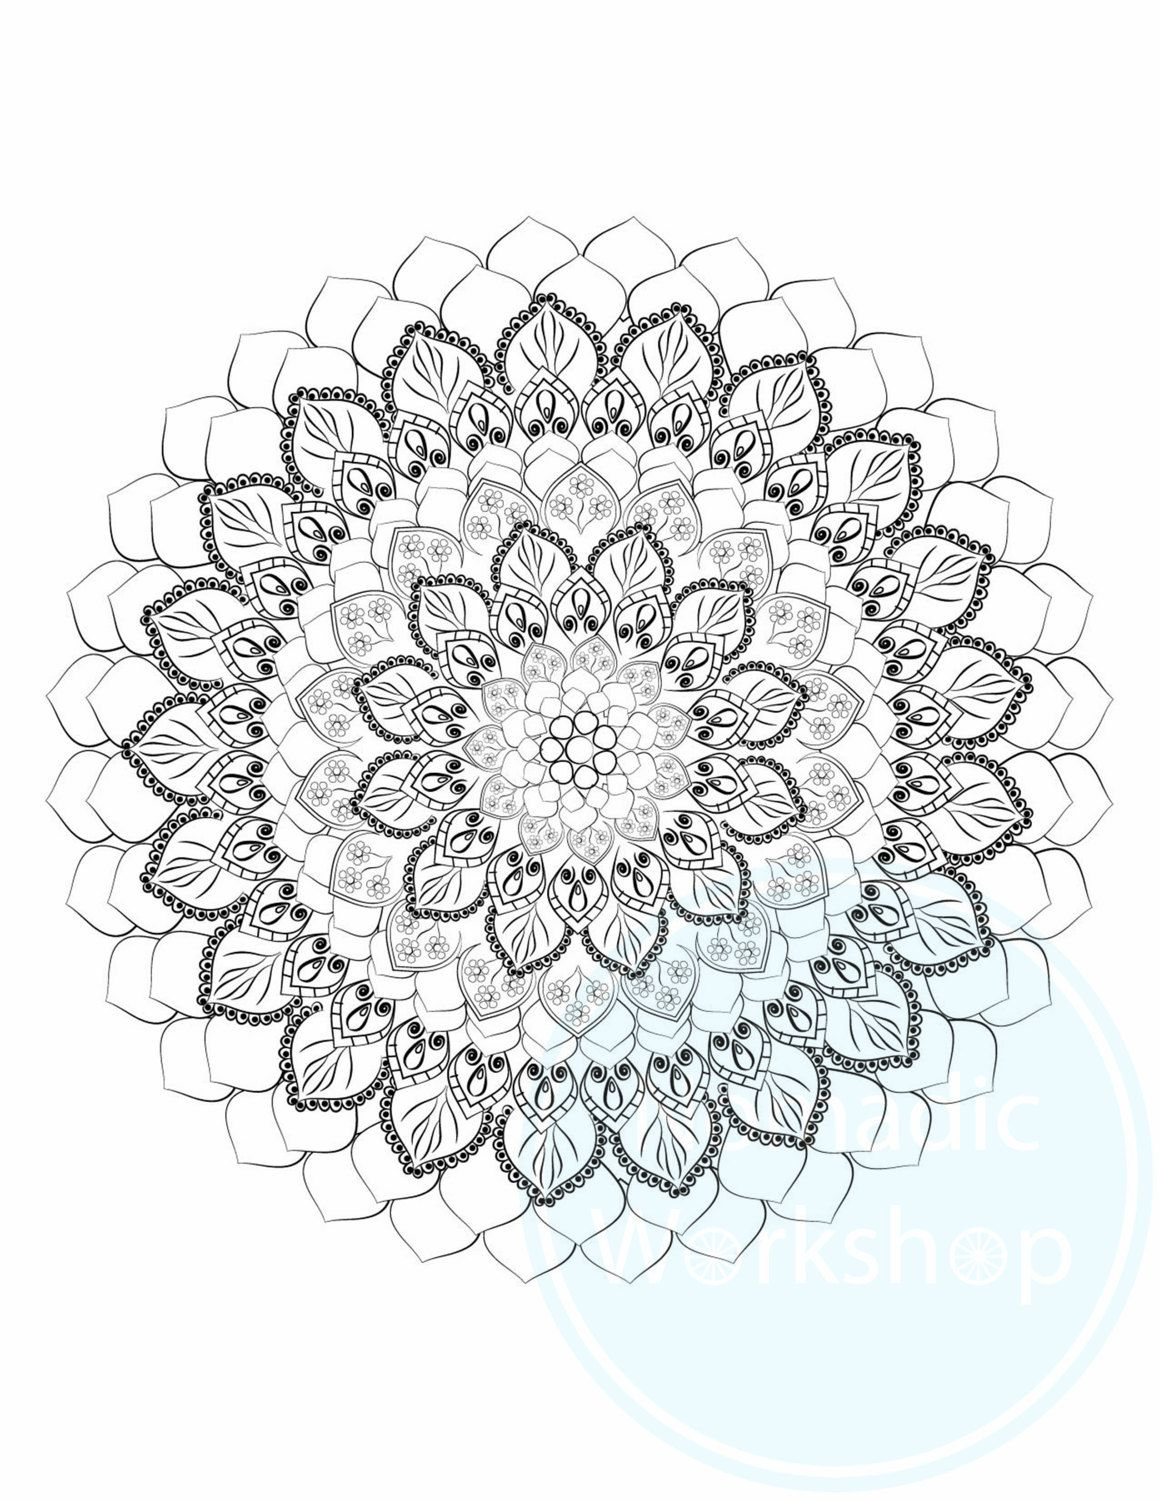 Stress relief coloring pages mandala - Mandala 1 Free Coloring Page Coloring Page For Adults Coloring For Stress Relief